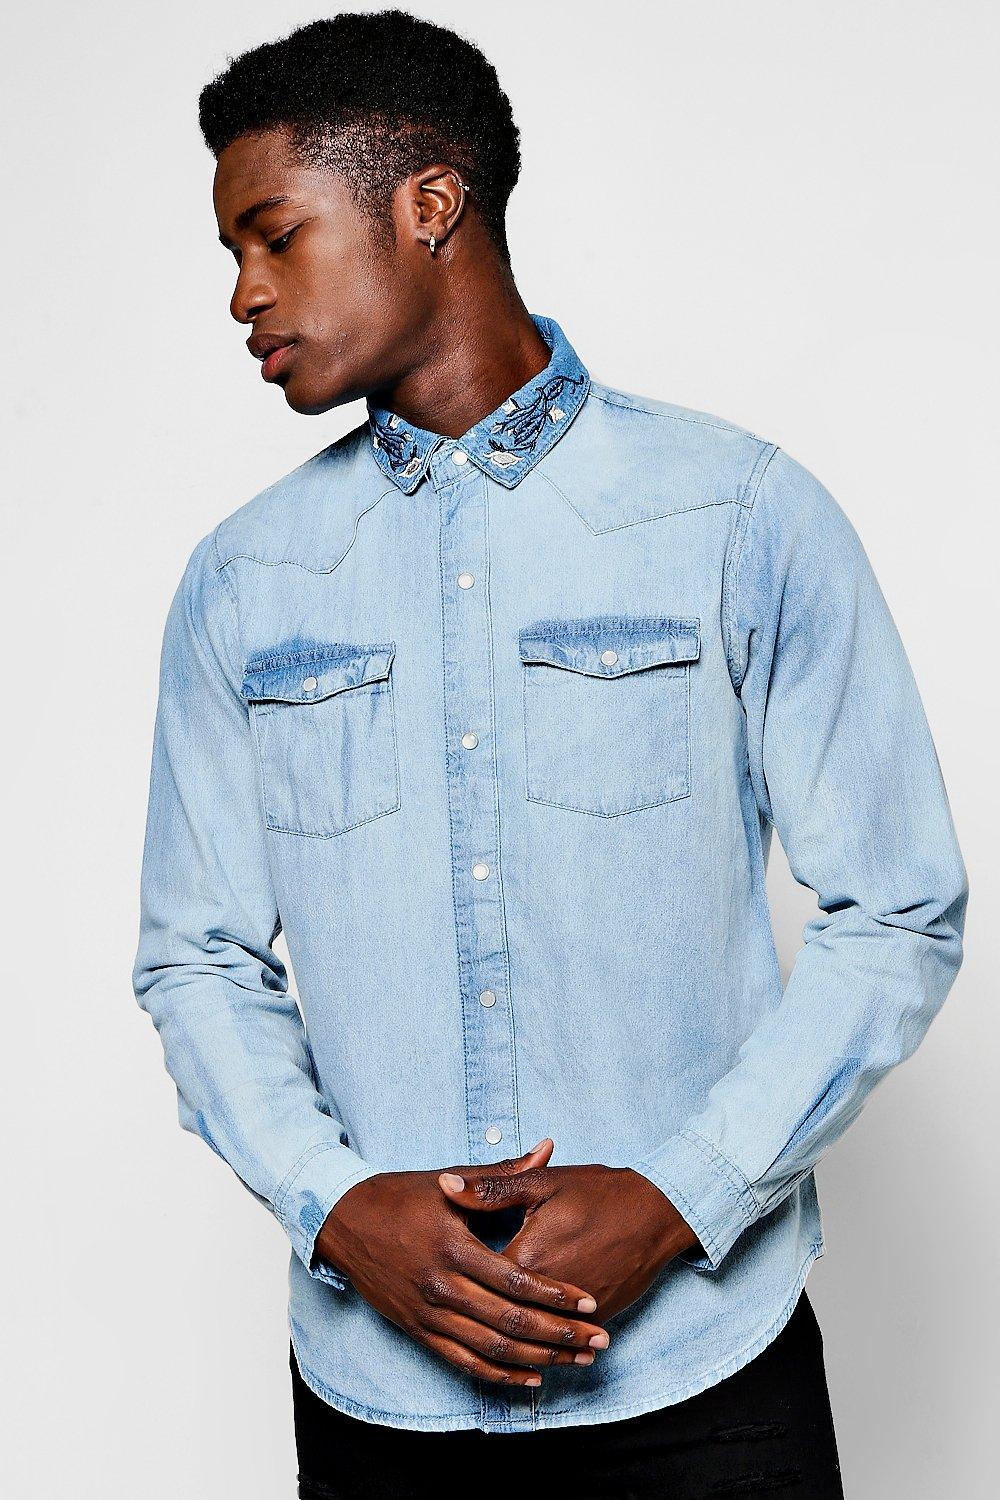 bfba443b03 Lyst - Boohoo Long Sleeve Denim Shirt With Embroidered Collar in ...